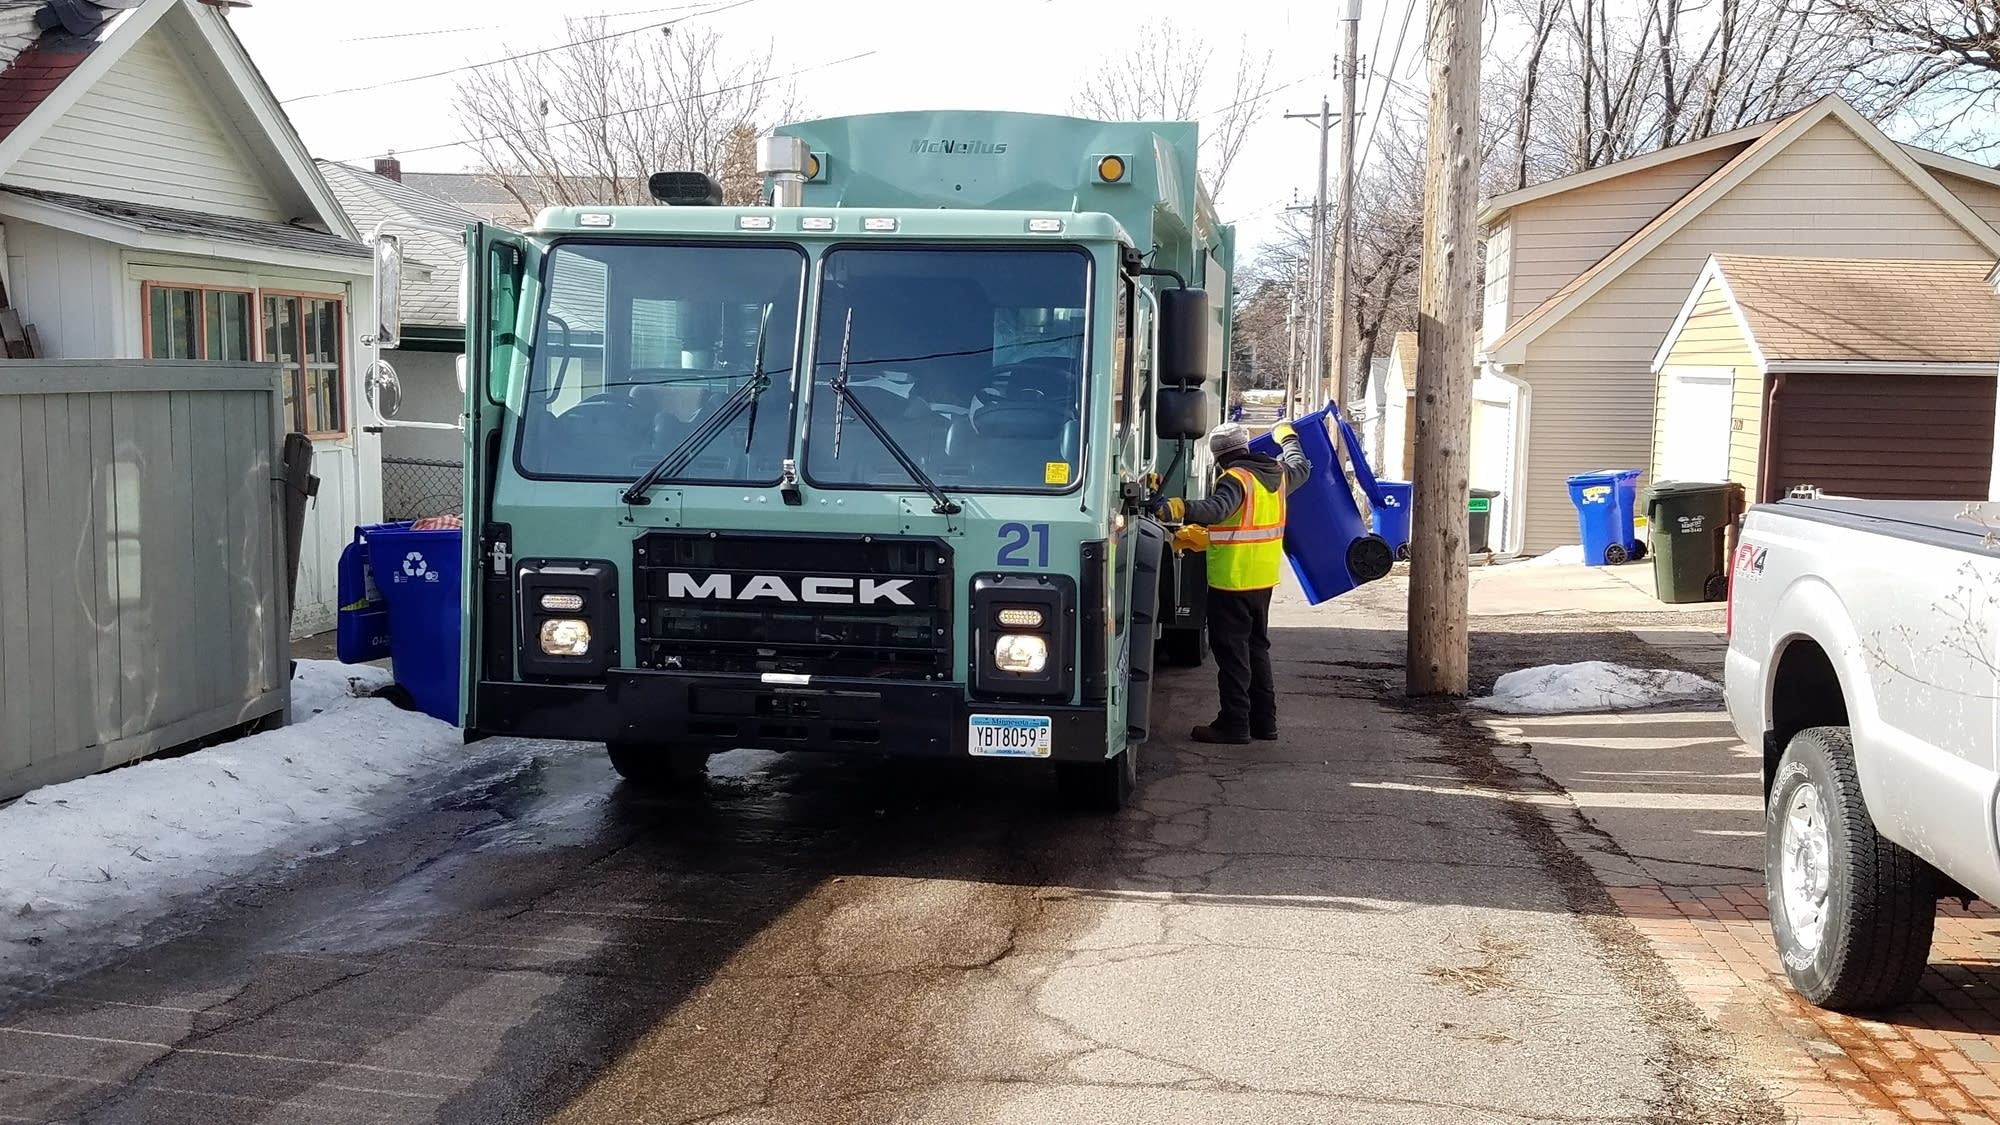 Recycling Woes Linger For Some St. Paul Residents   Mpr News intended for Nelson Recycling Calendar